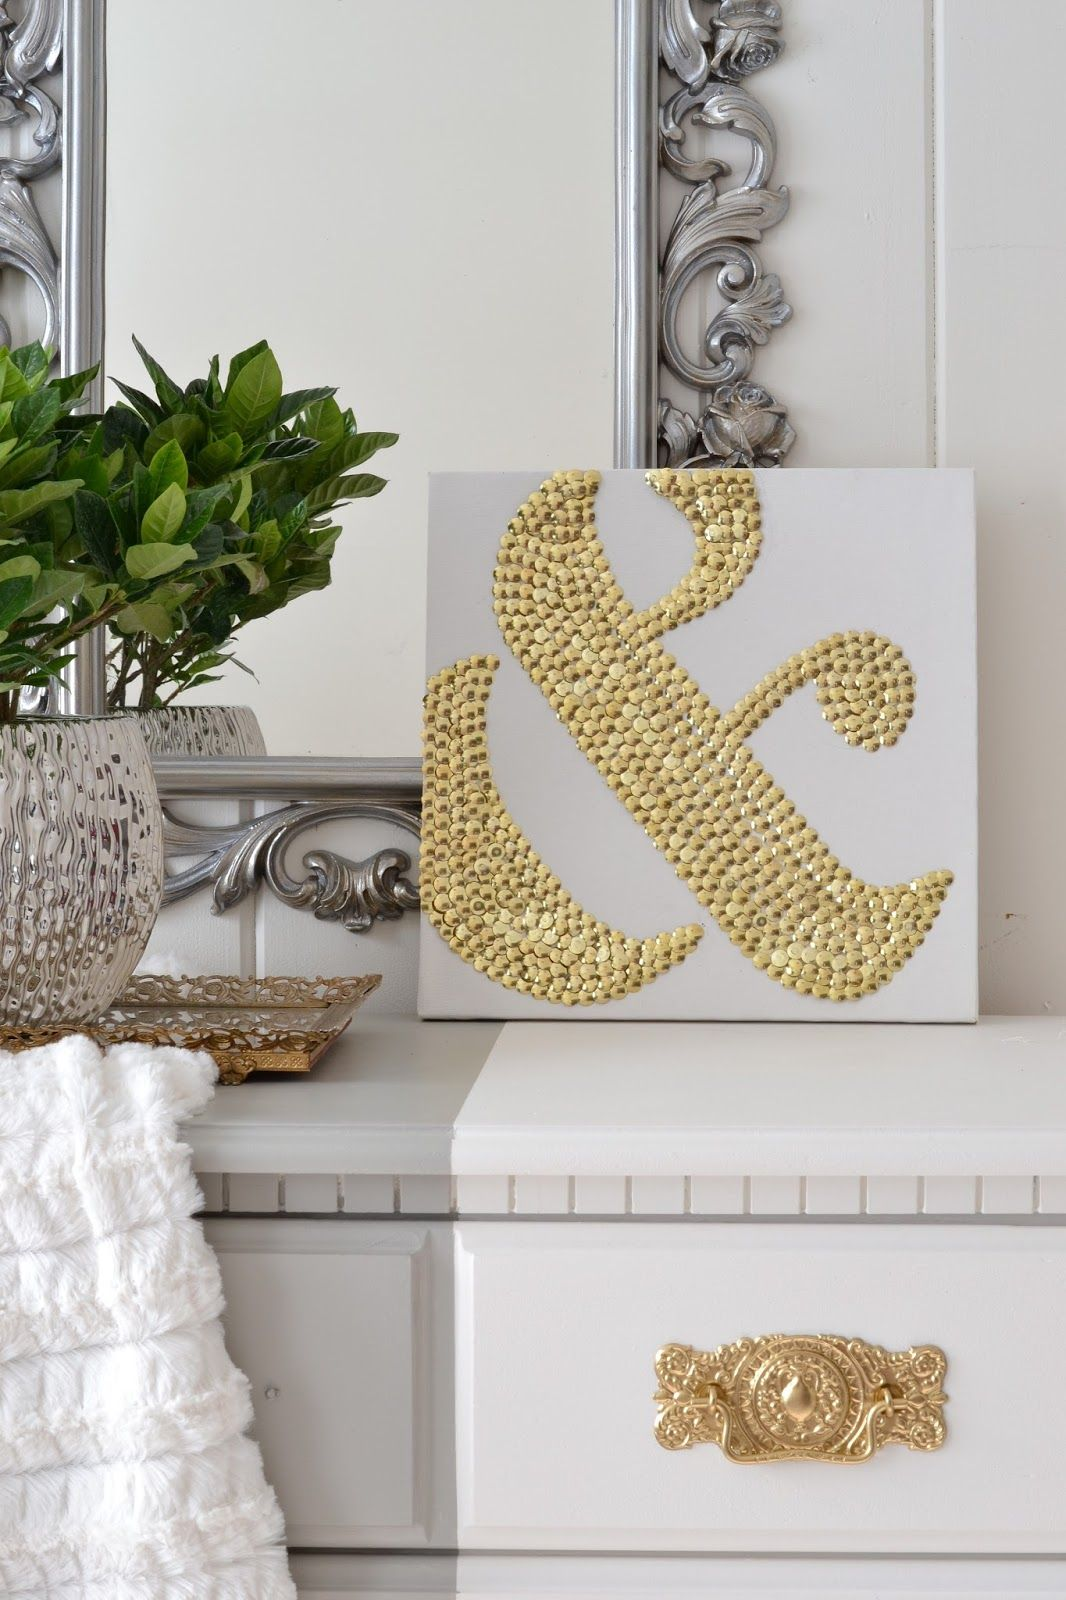 50 Creative Dollar Store Home Decorating and Organization Ideas ...